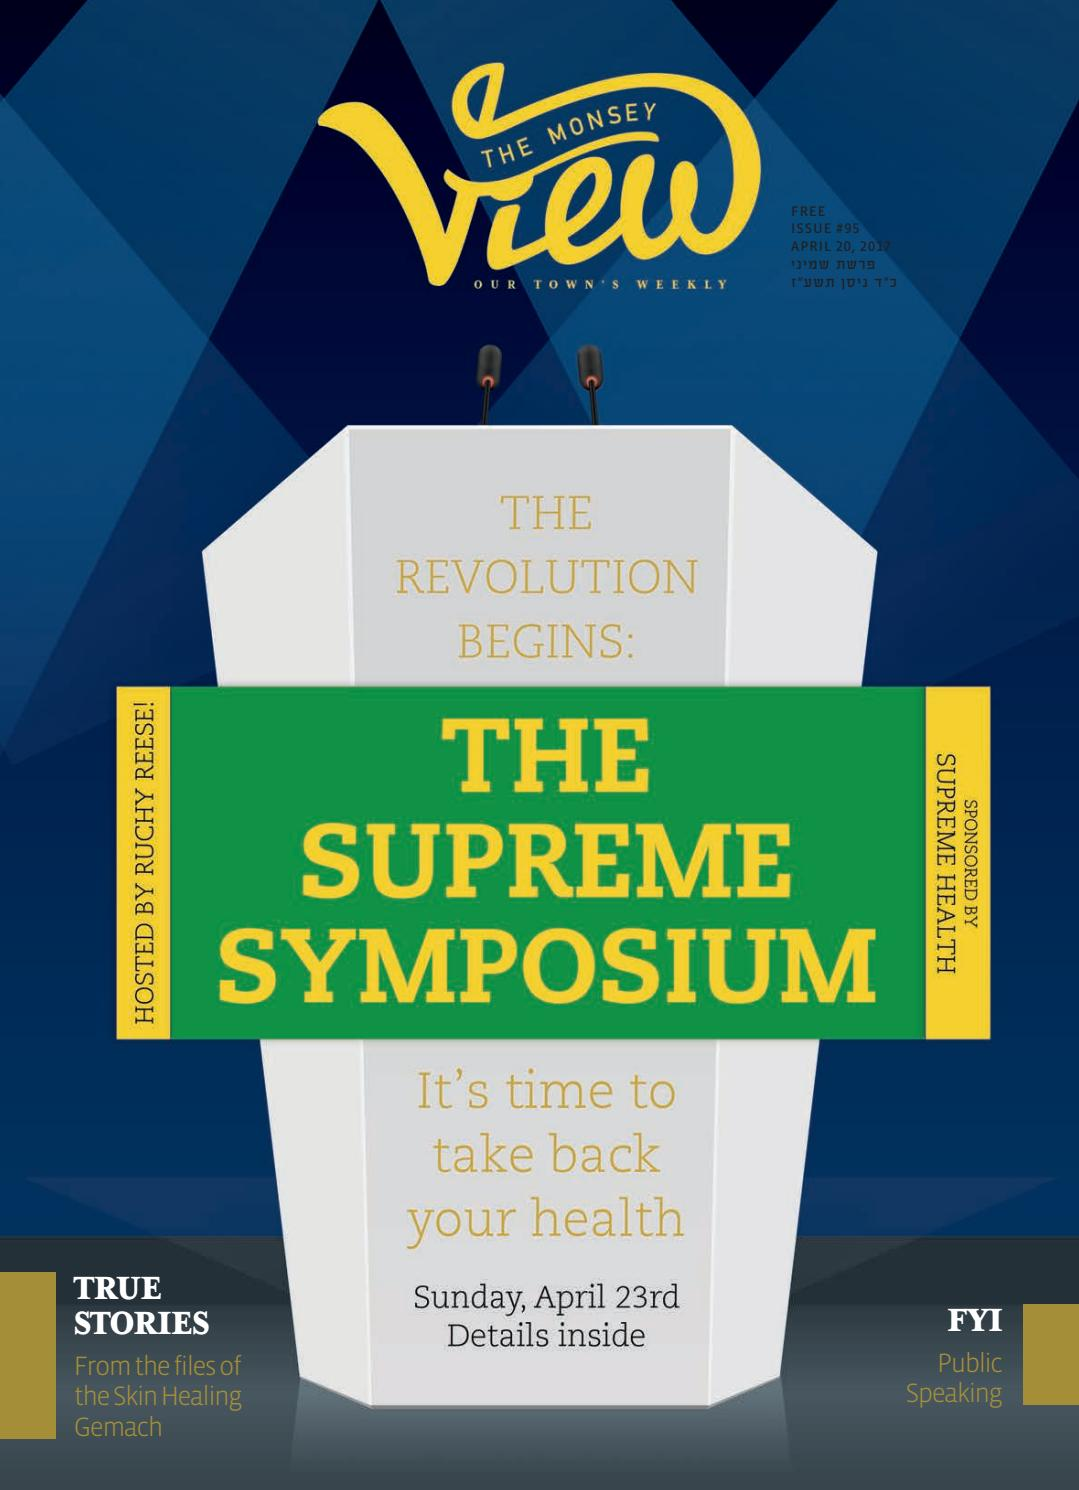 Issue 95 by The Monsey View - issuu